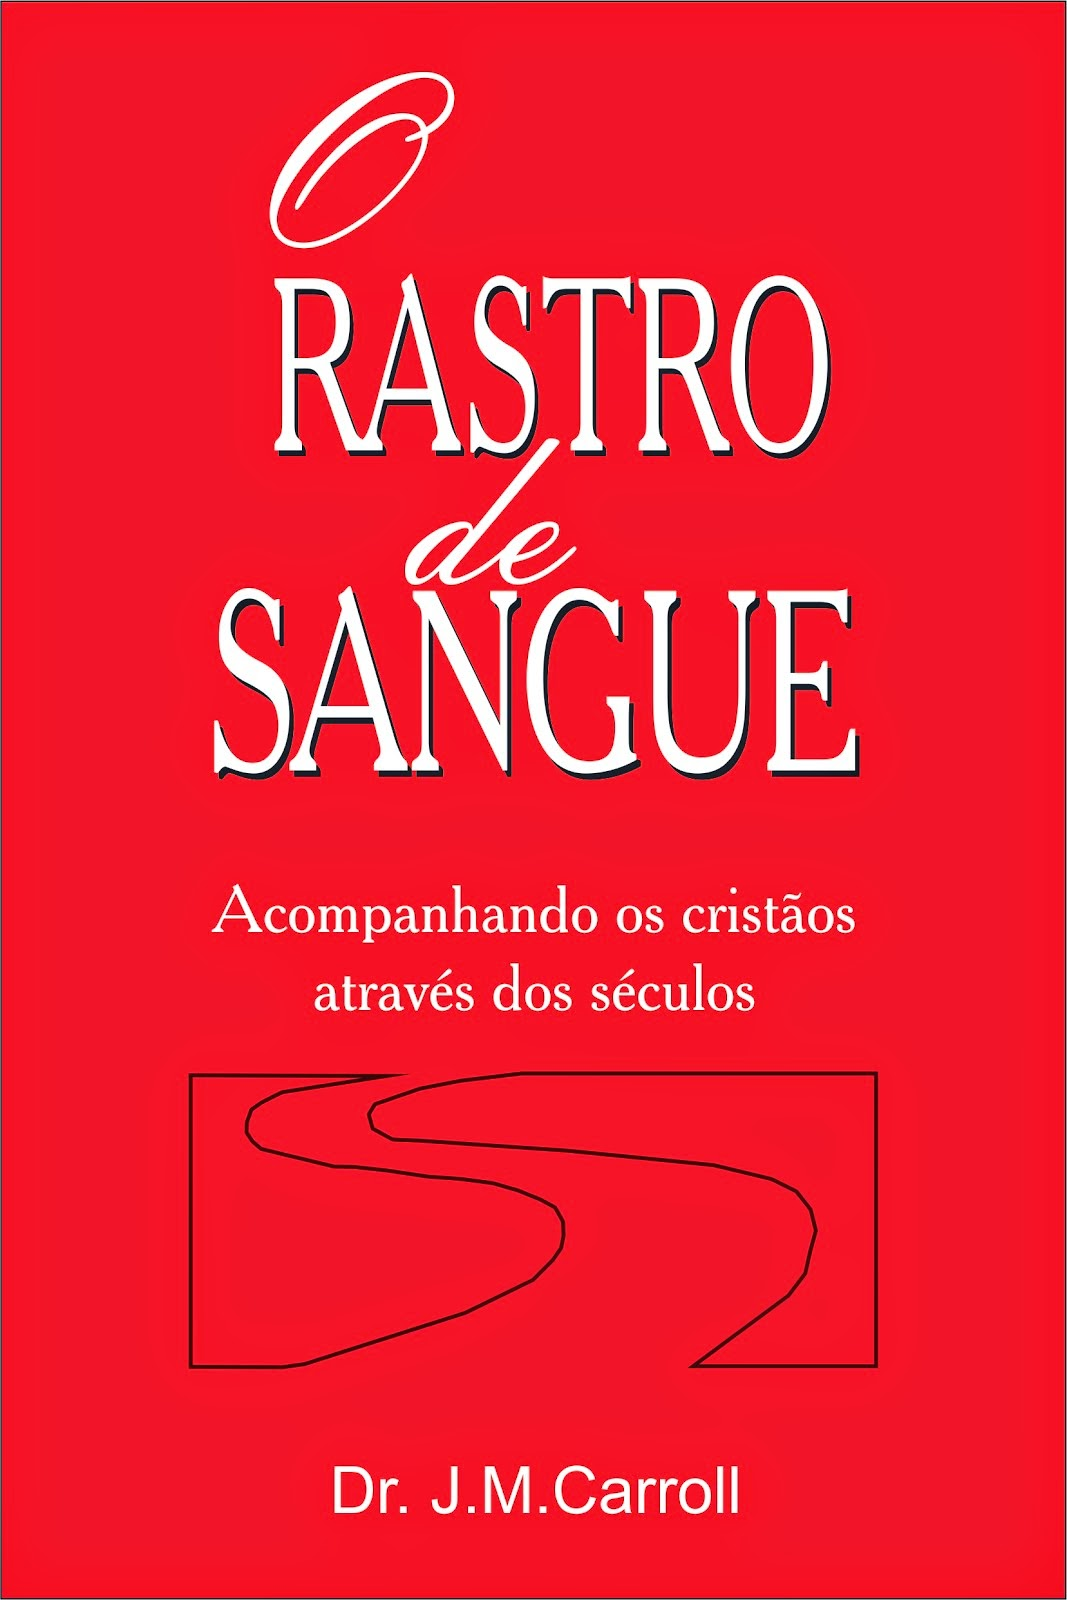 Baixe o livro O RASTRO DE SANGUE